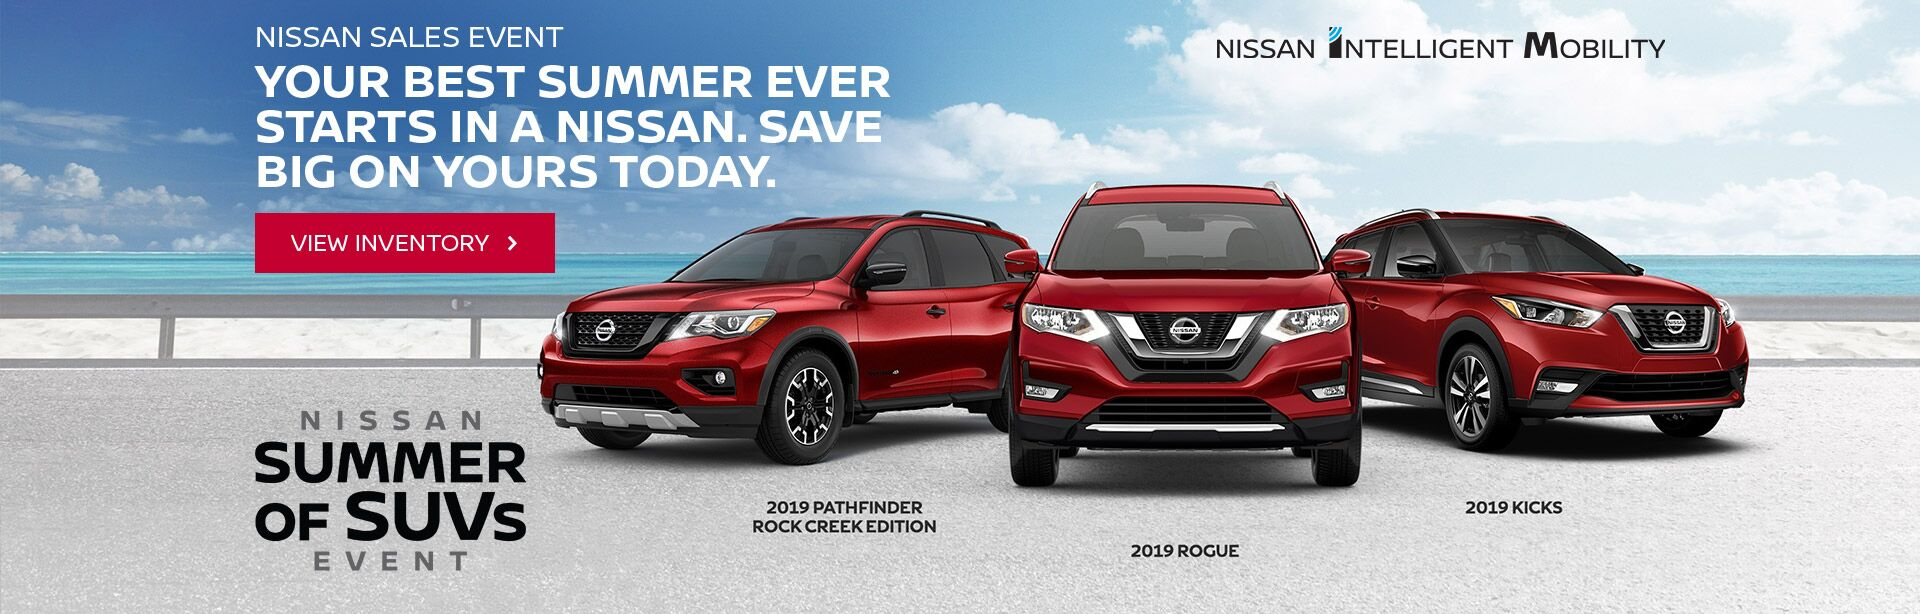 Nissan Summer of SUV